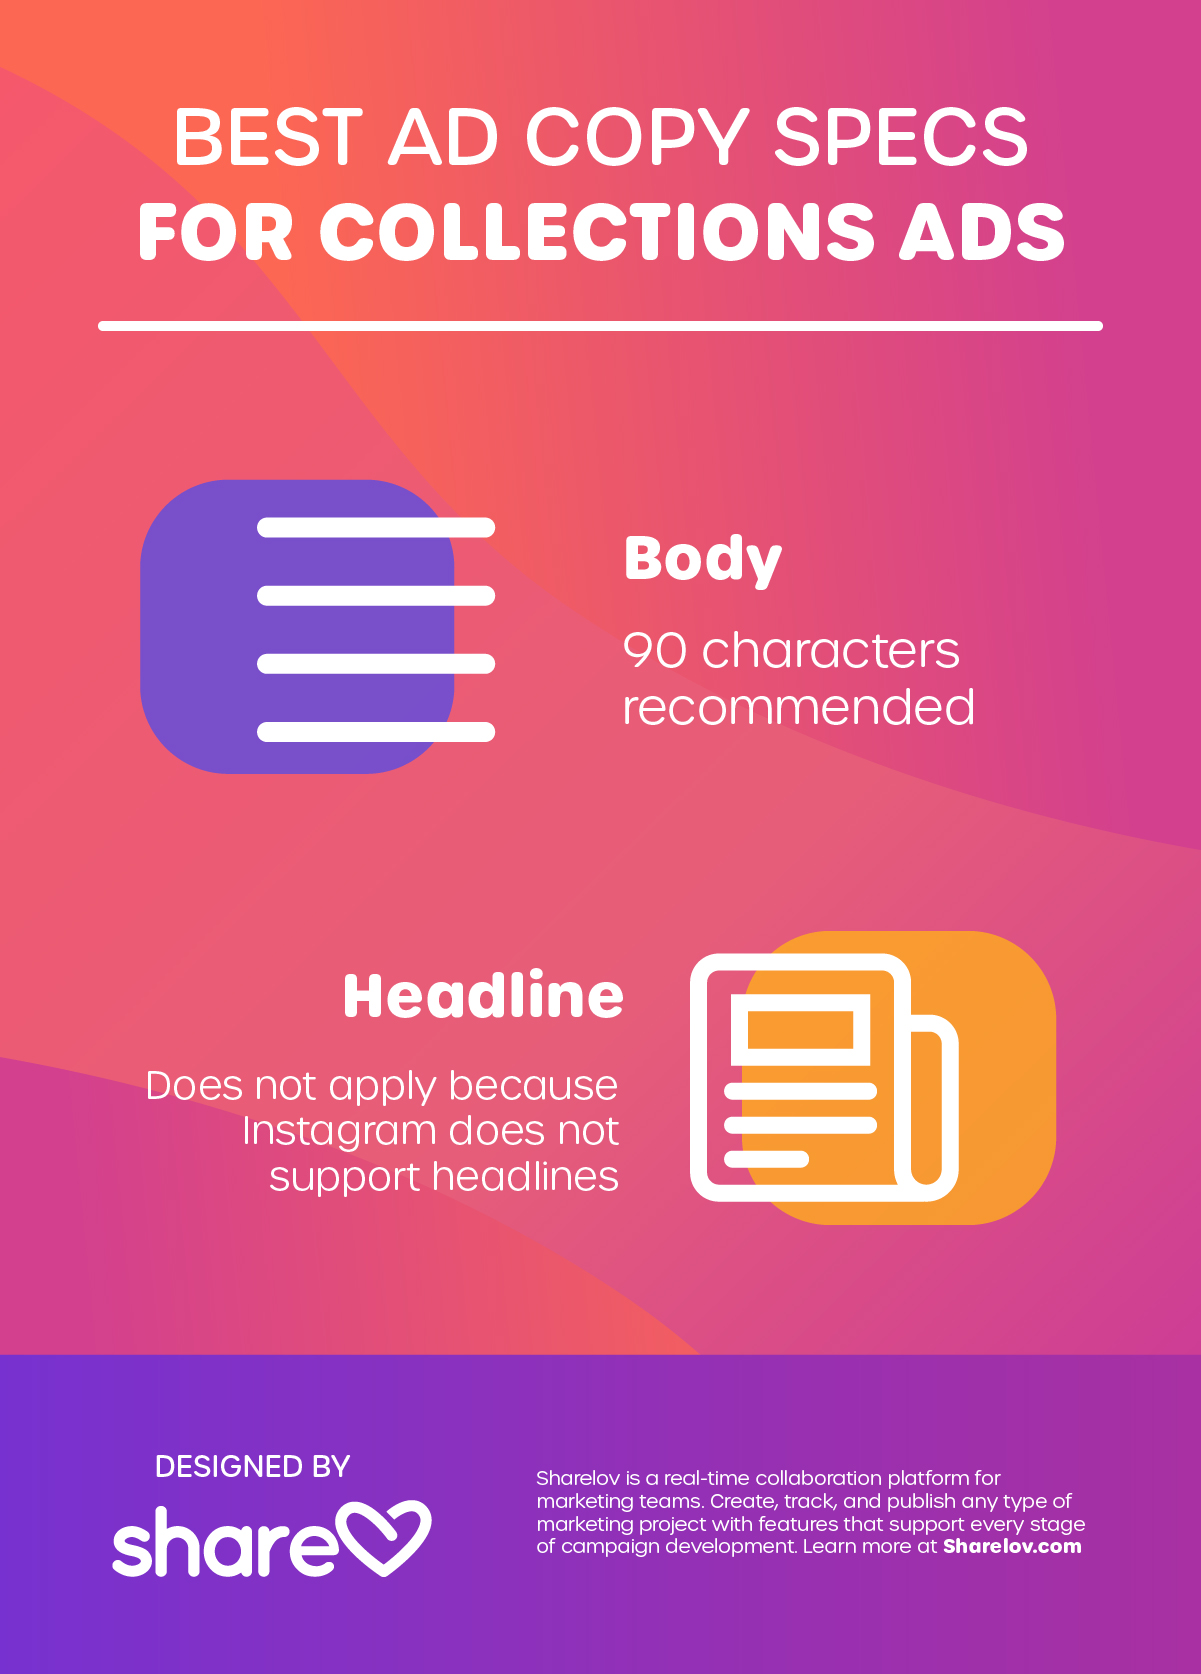 Best Ad Copy Specs for Collections Ads infographic